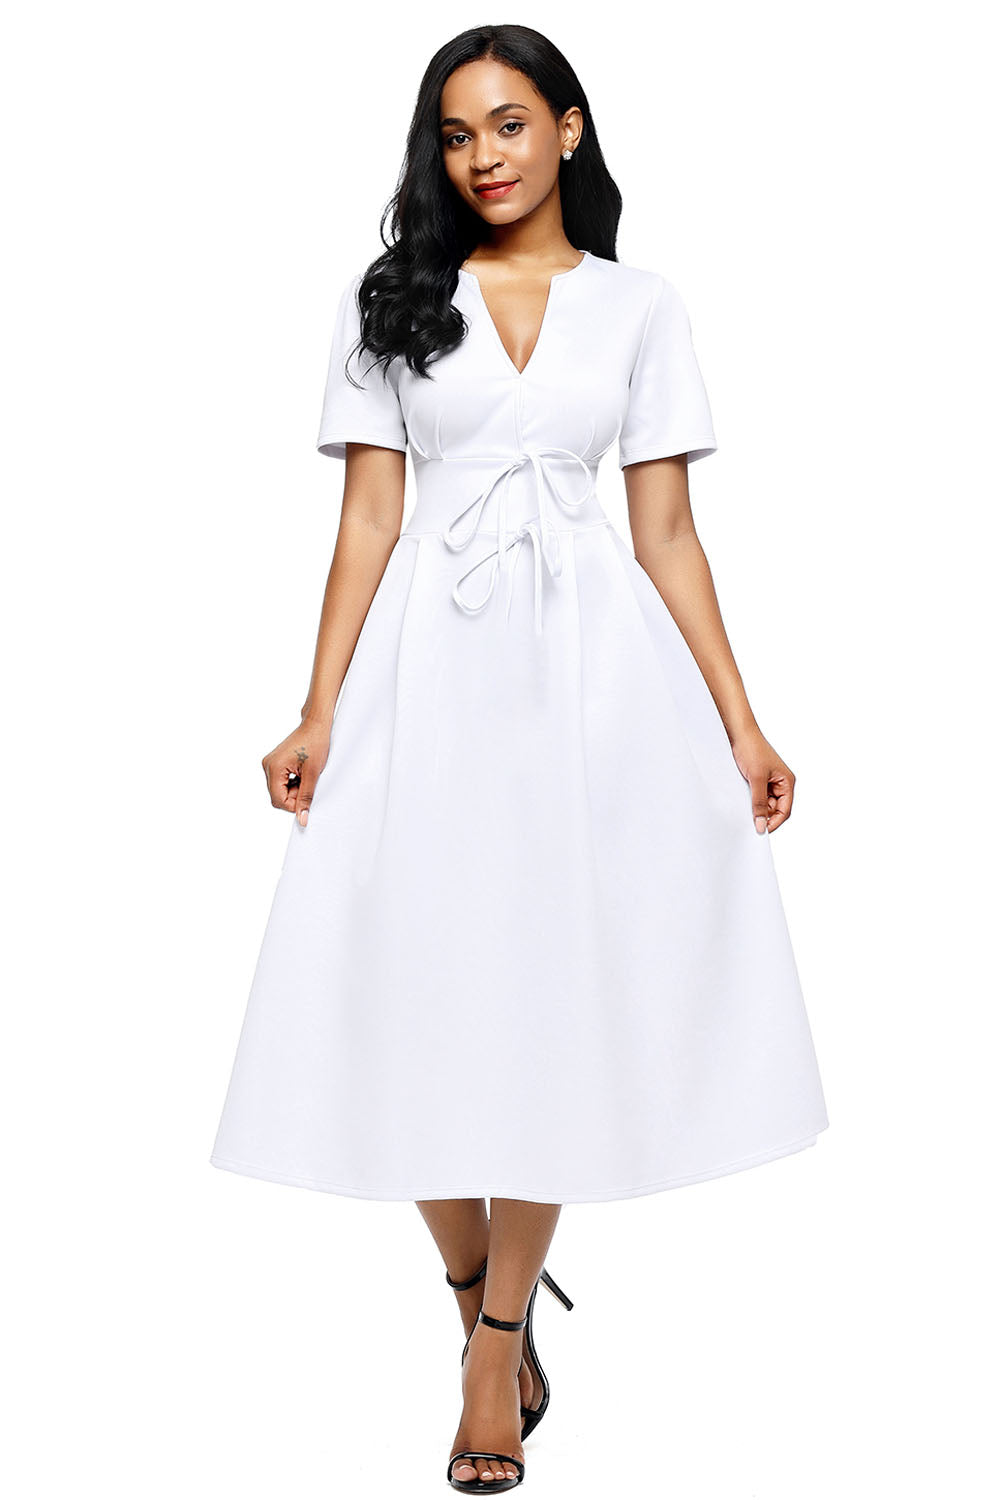 Her Gorgeous White Split Neck Short Sleeve Midi Dress with Bowknots